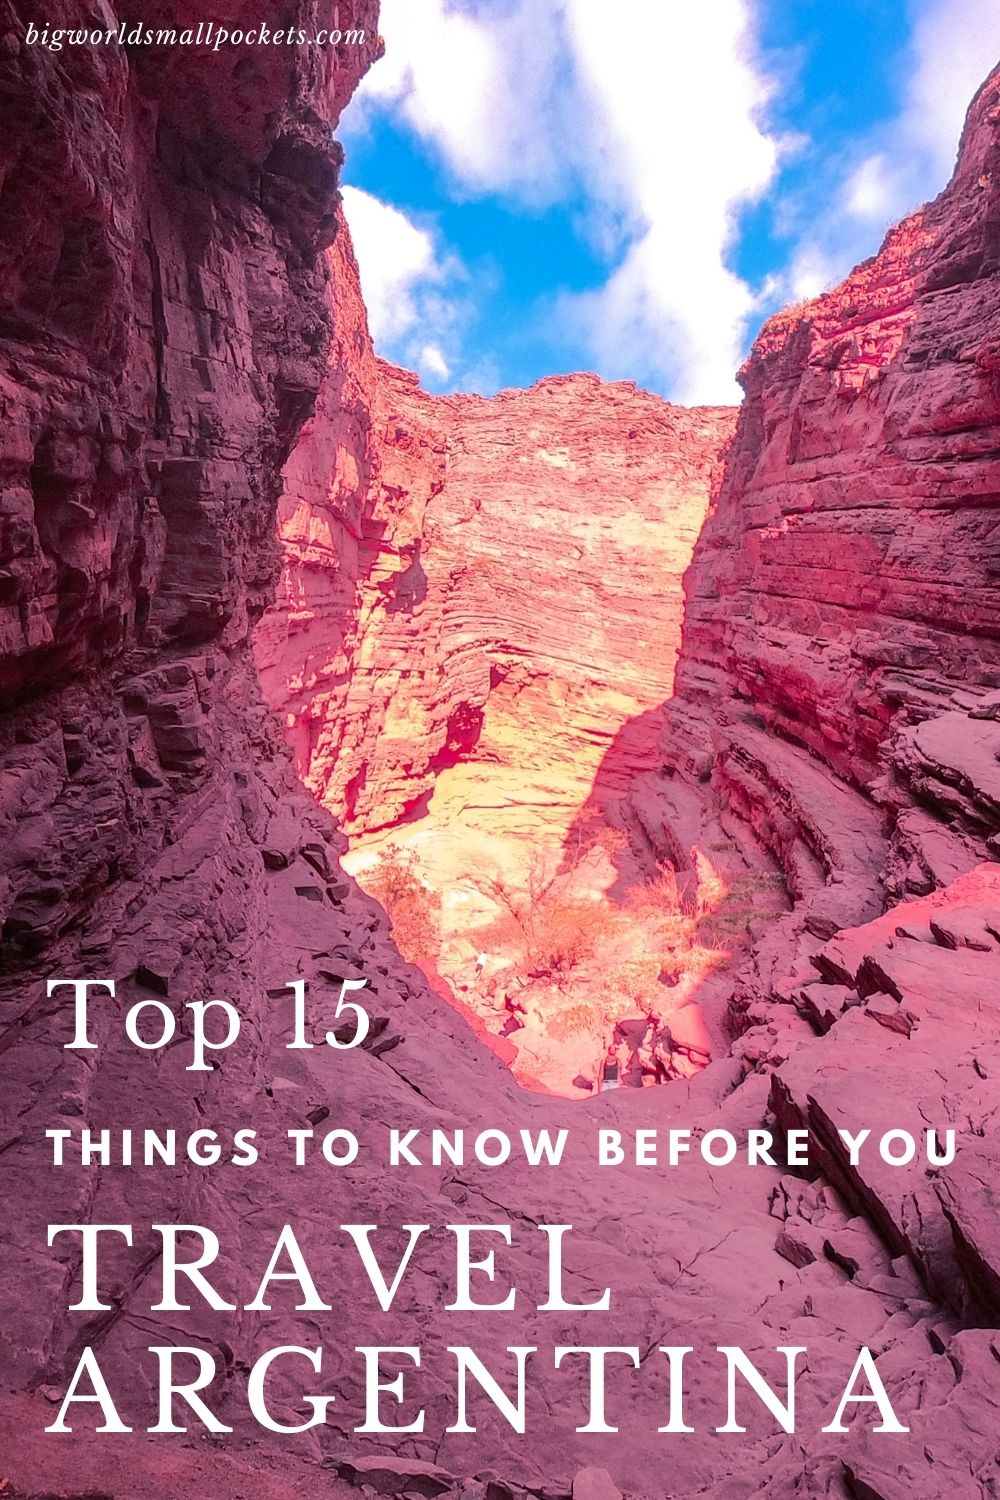 15 Key Things to Know Before you Travel Argentina